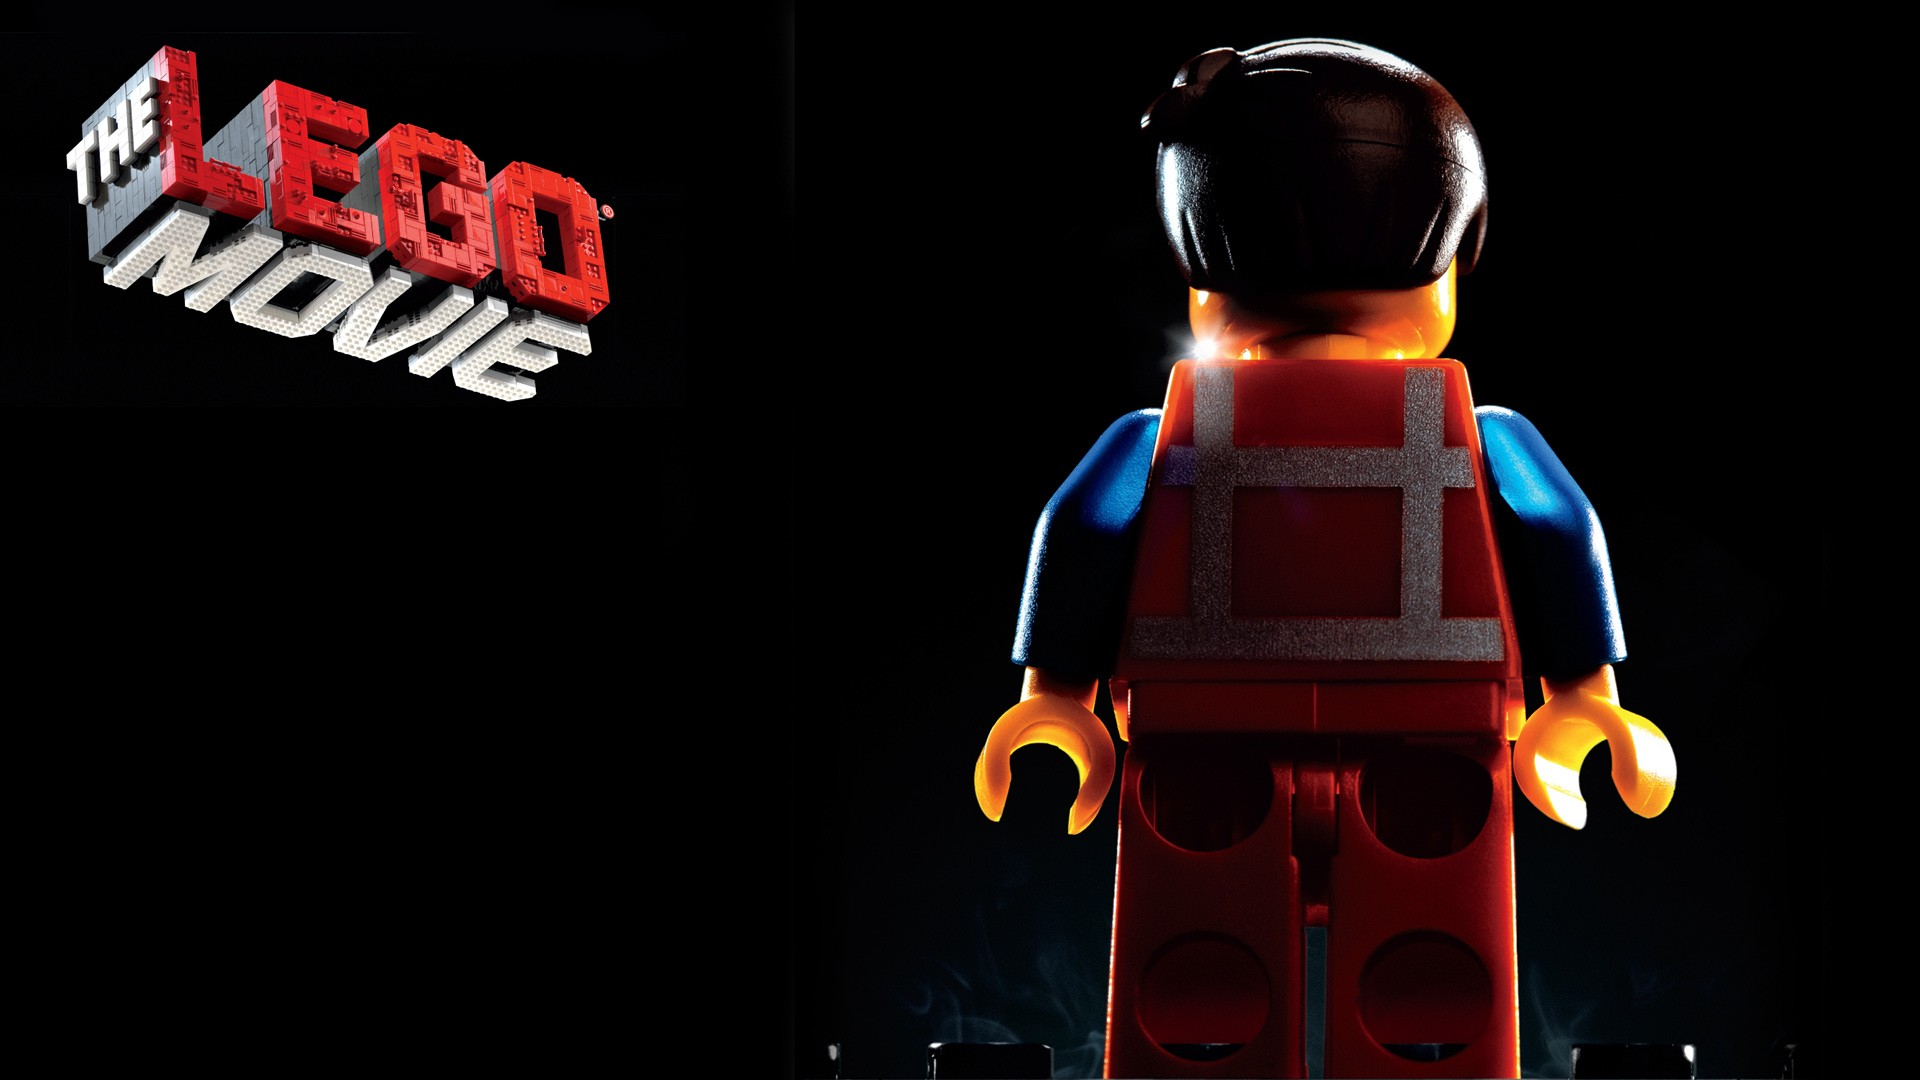 Top Hd Wallpapers 1080p 2014 The Lego Movie Wallpapers Hd Wallpapers Id 12674